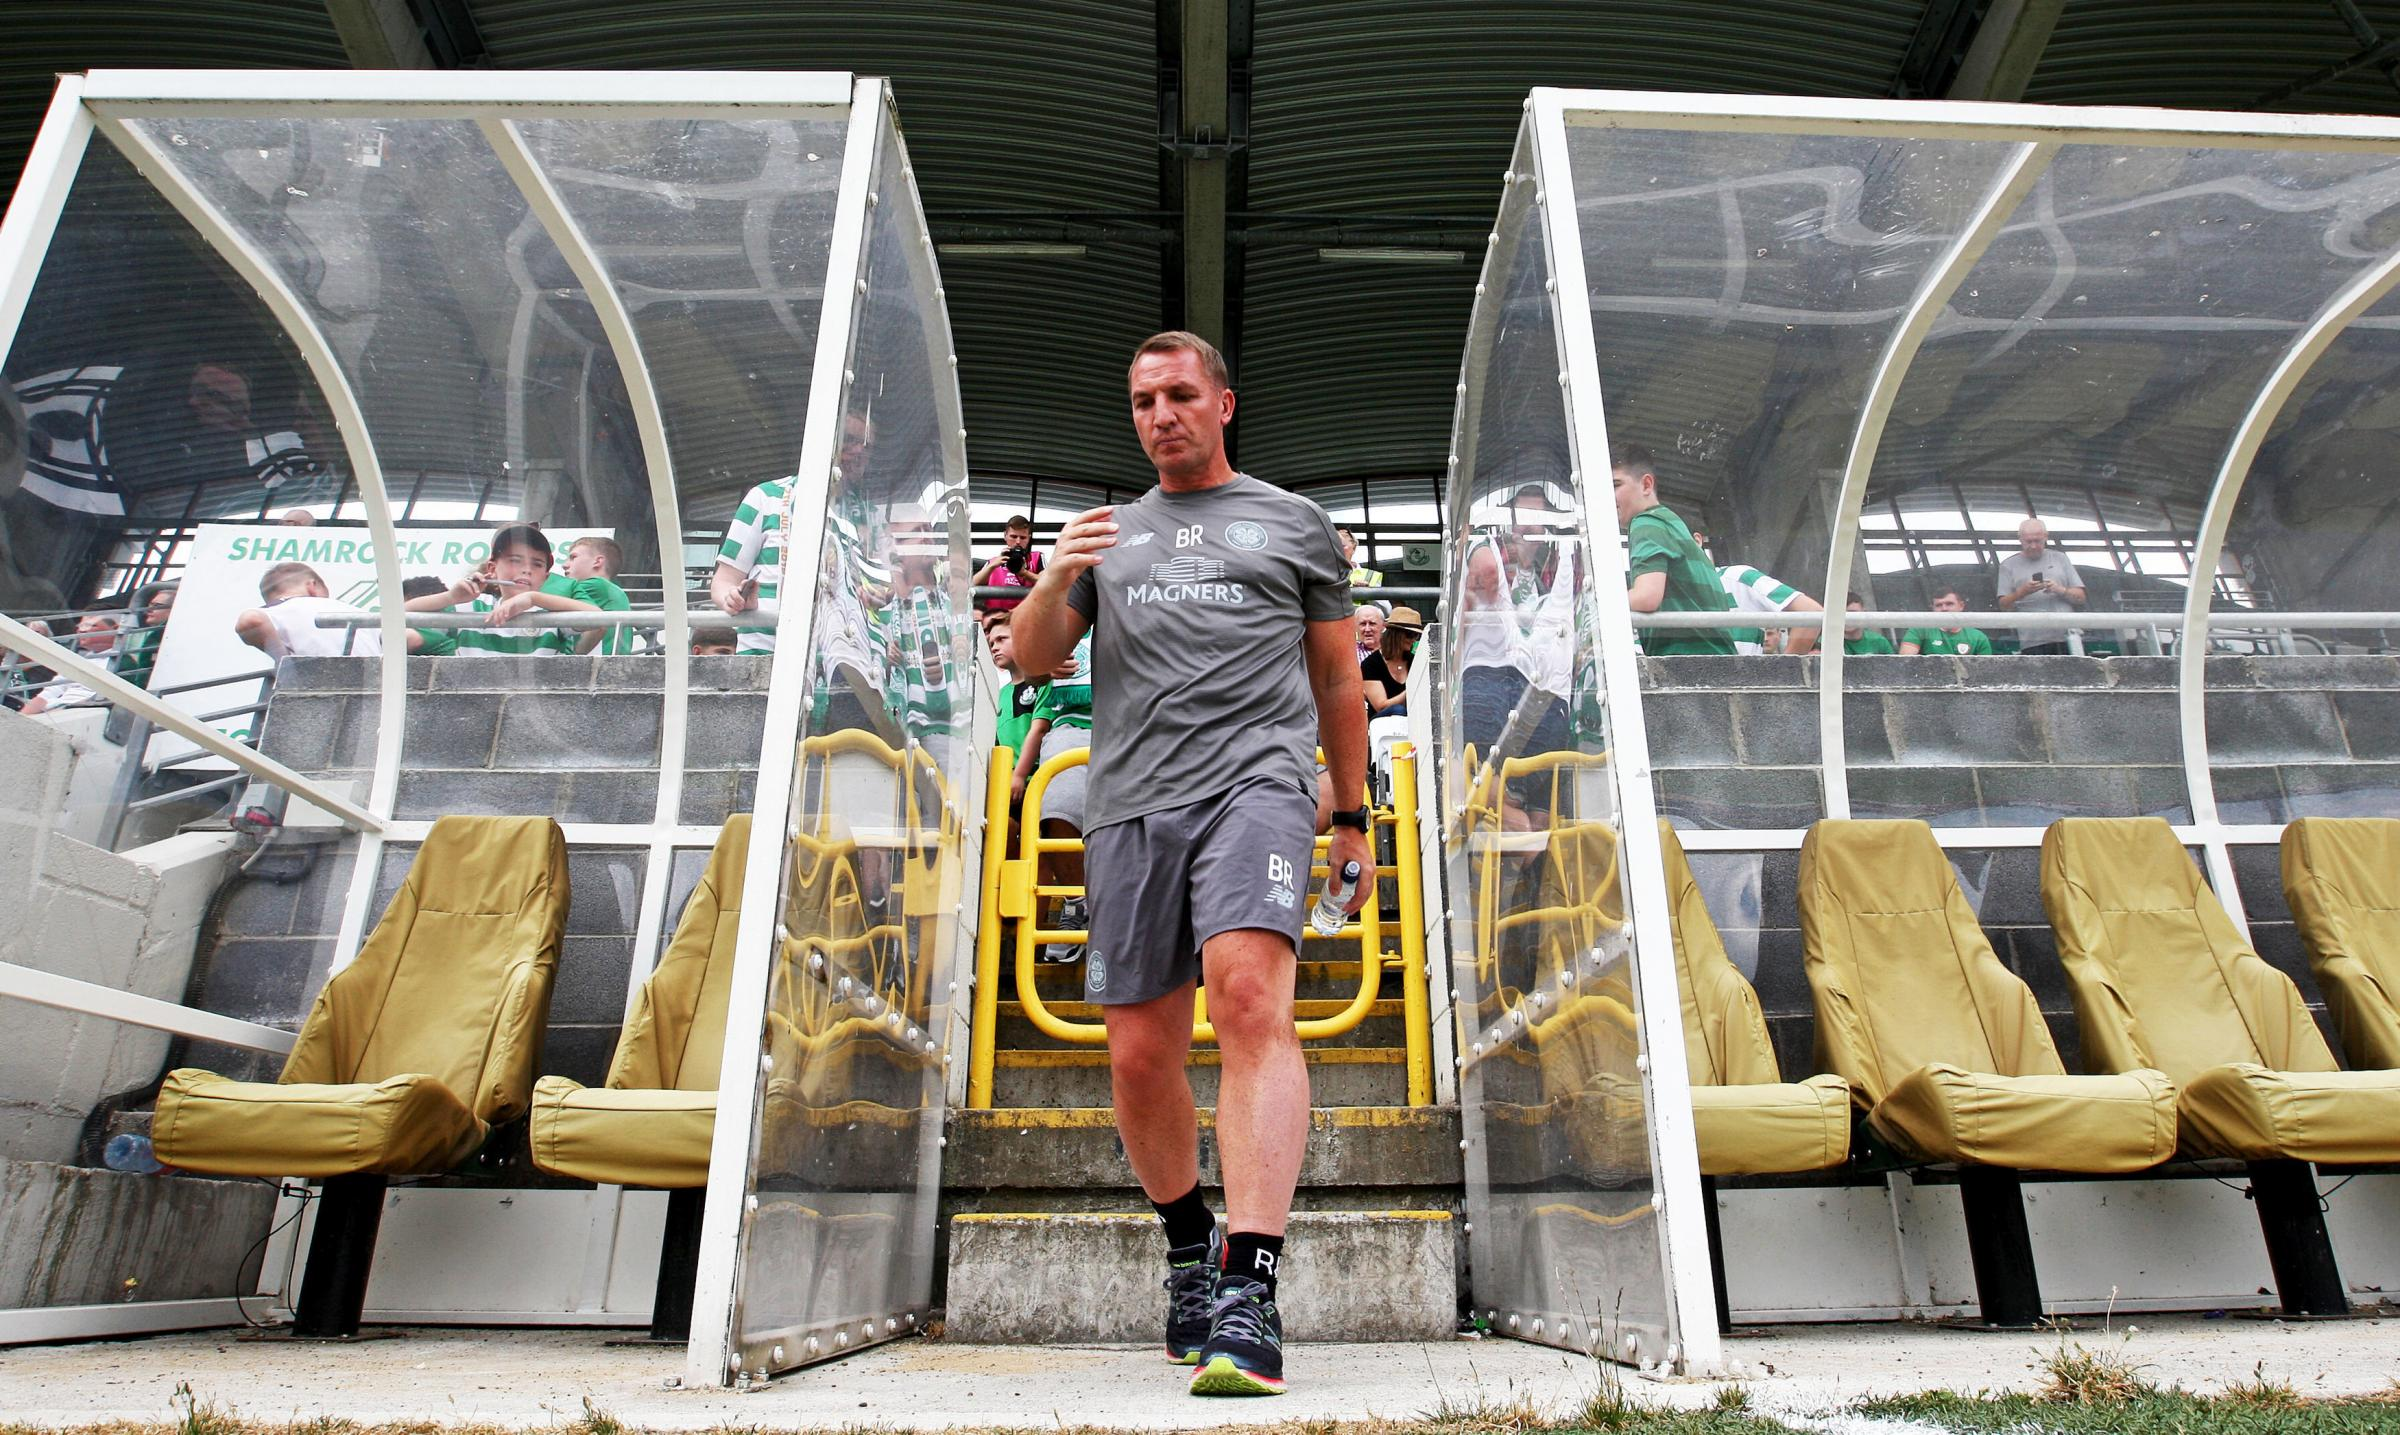 Brendan Rodgers will be looking to avenge some drubbings under his tenure for Celtic in Europe.